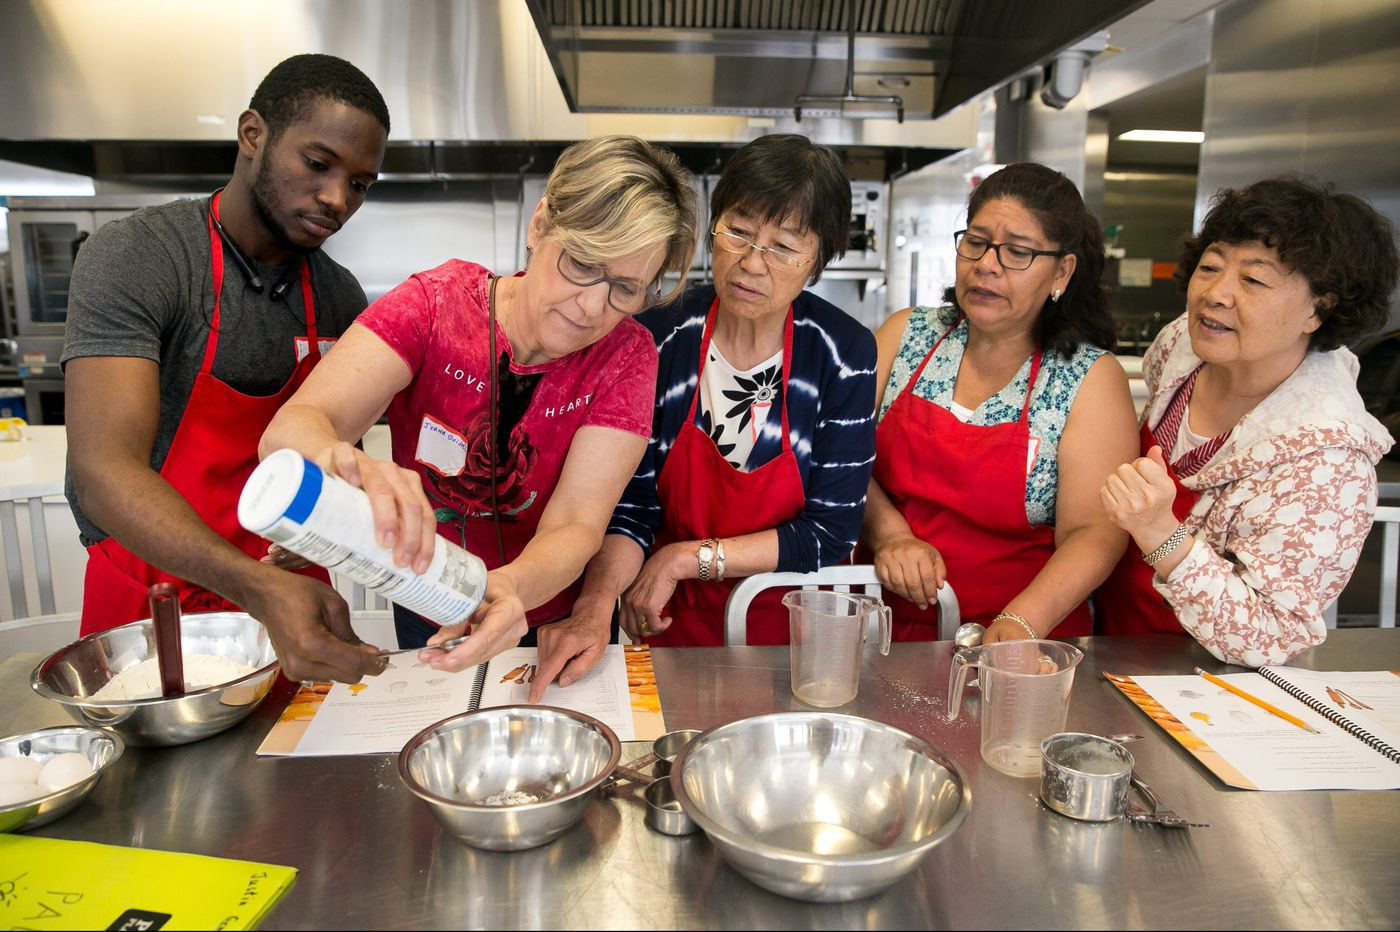 For these immigrants, flipping pancakes and learning English go hand-in-hand